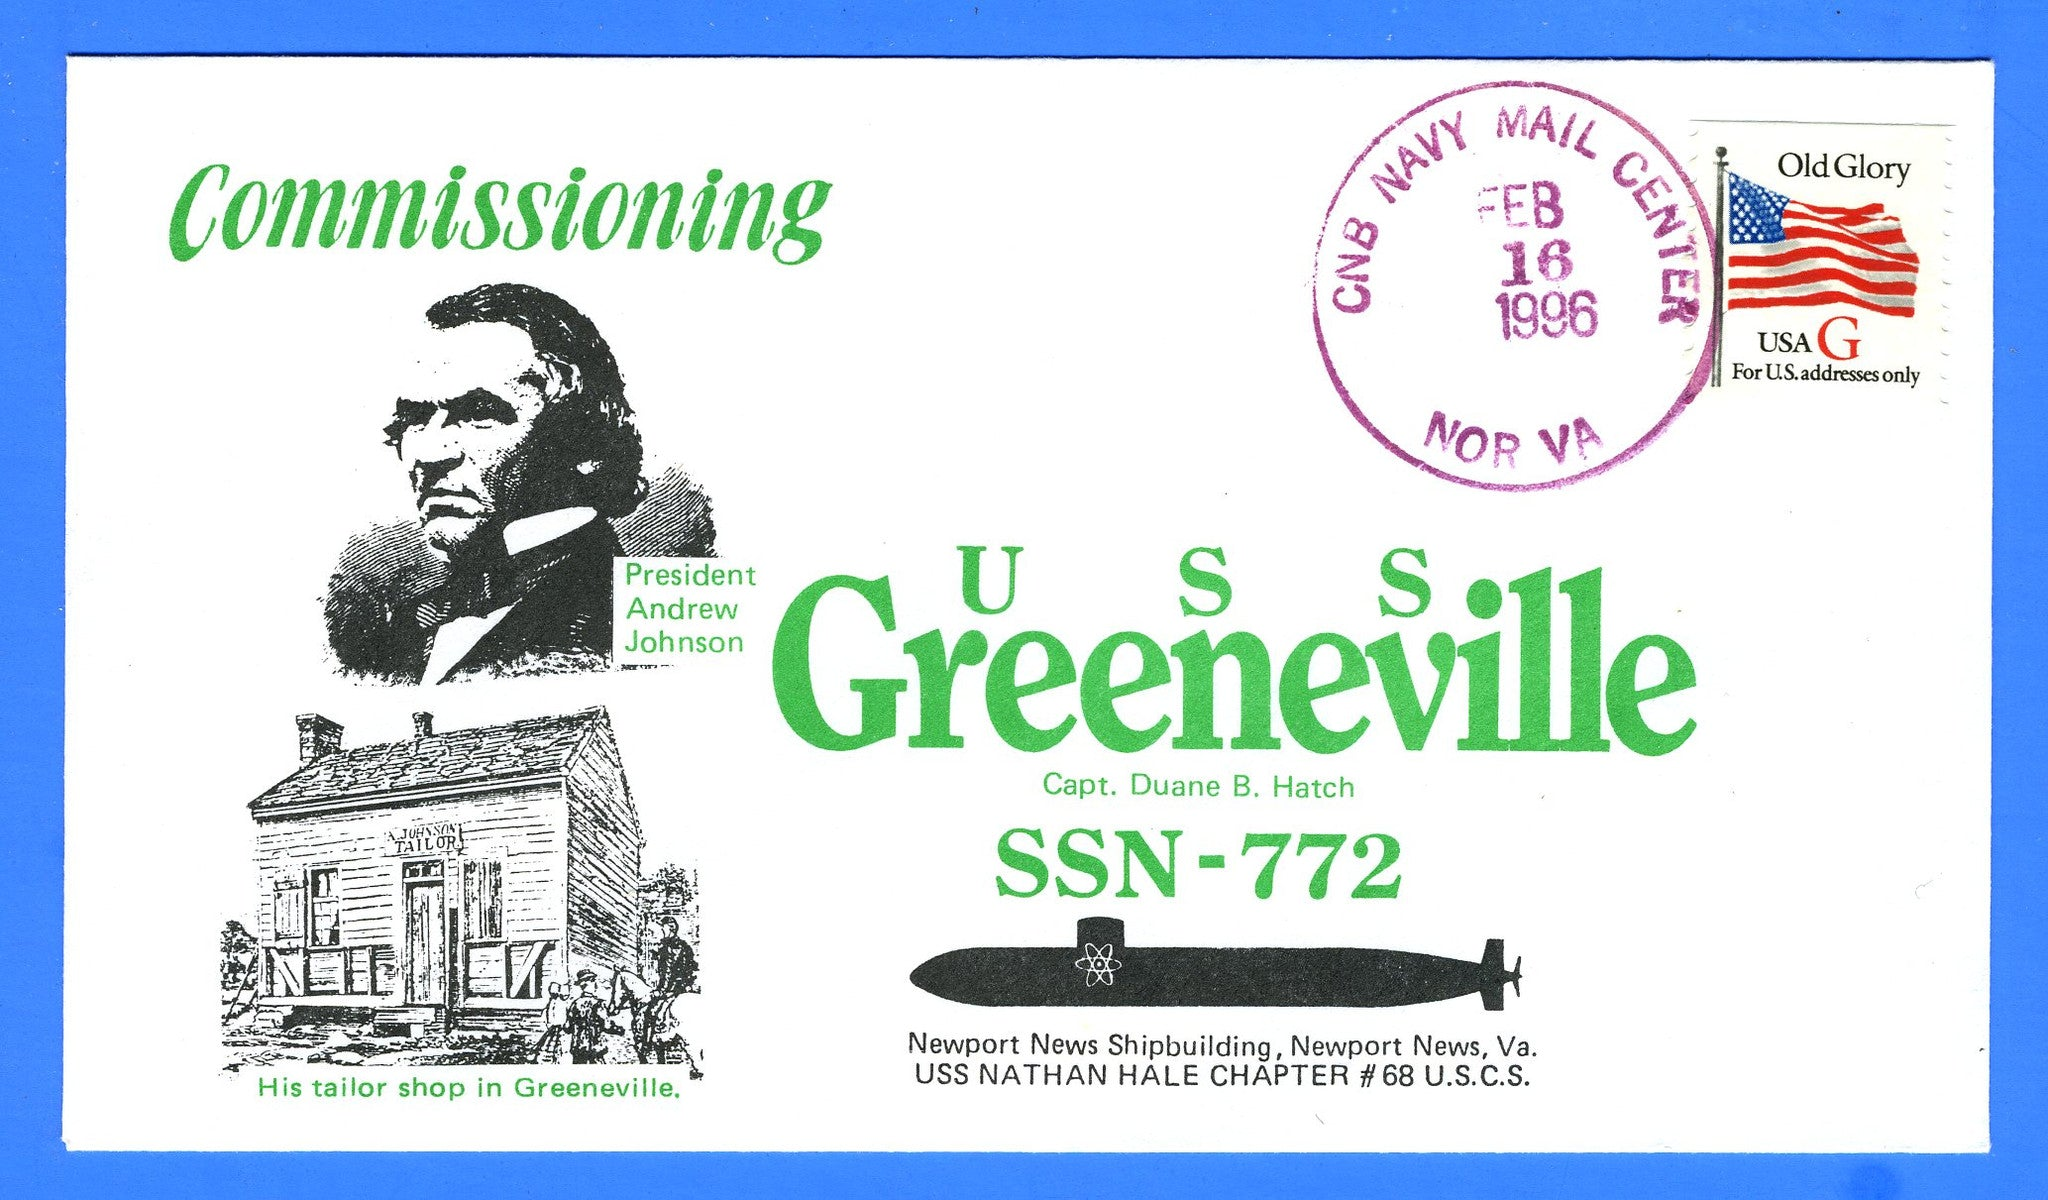 USS Greeneville SSN-772 Commissioned February 16, 1996